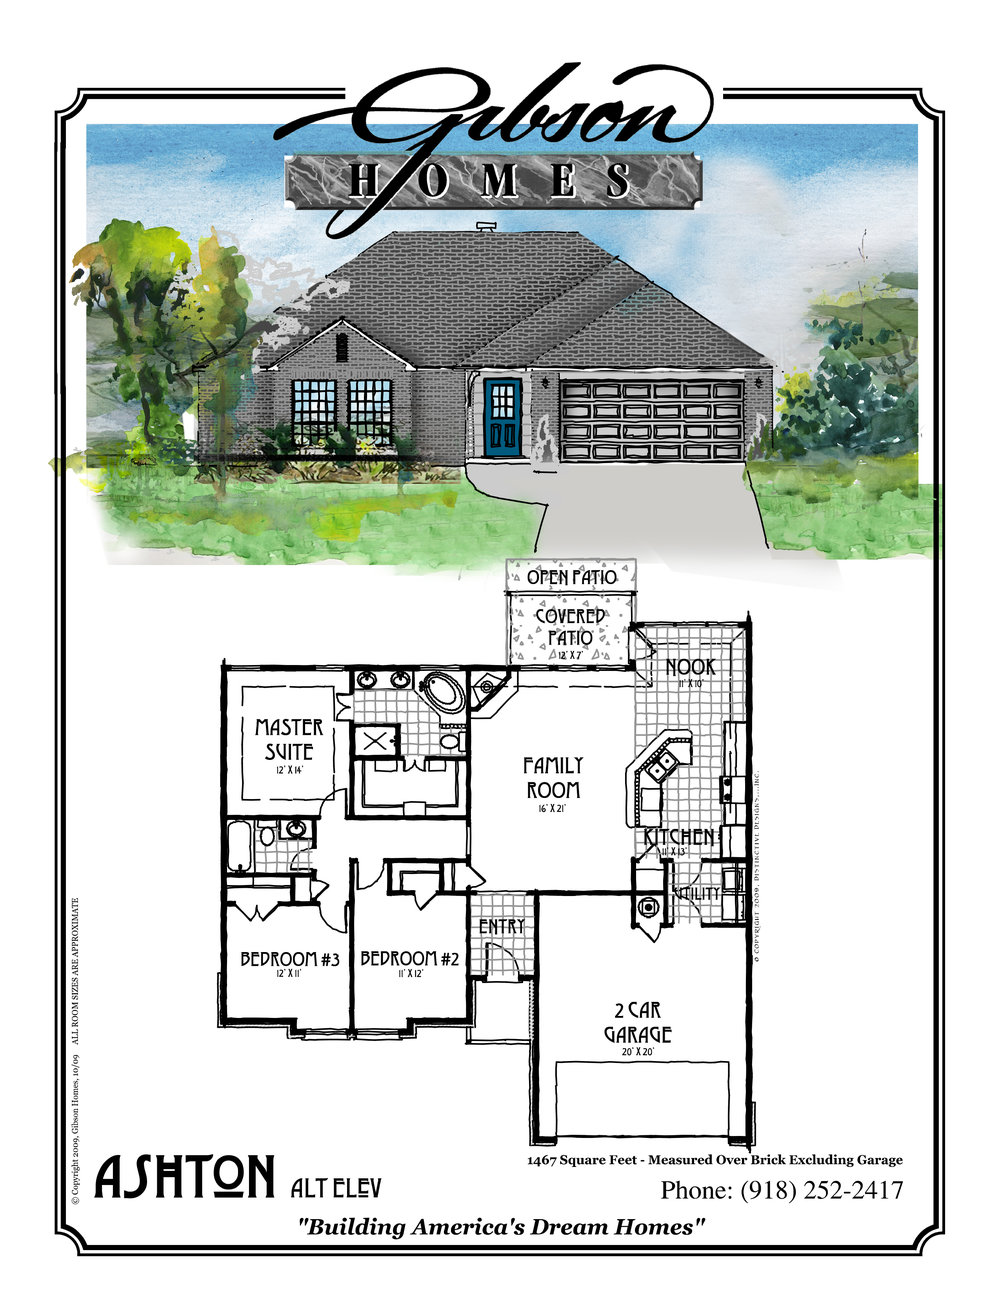 ASHTON - 1467 Sq Feet3 bedrooms2 bathrooms2 car garageBase Price $143,000